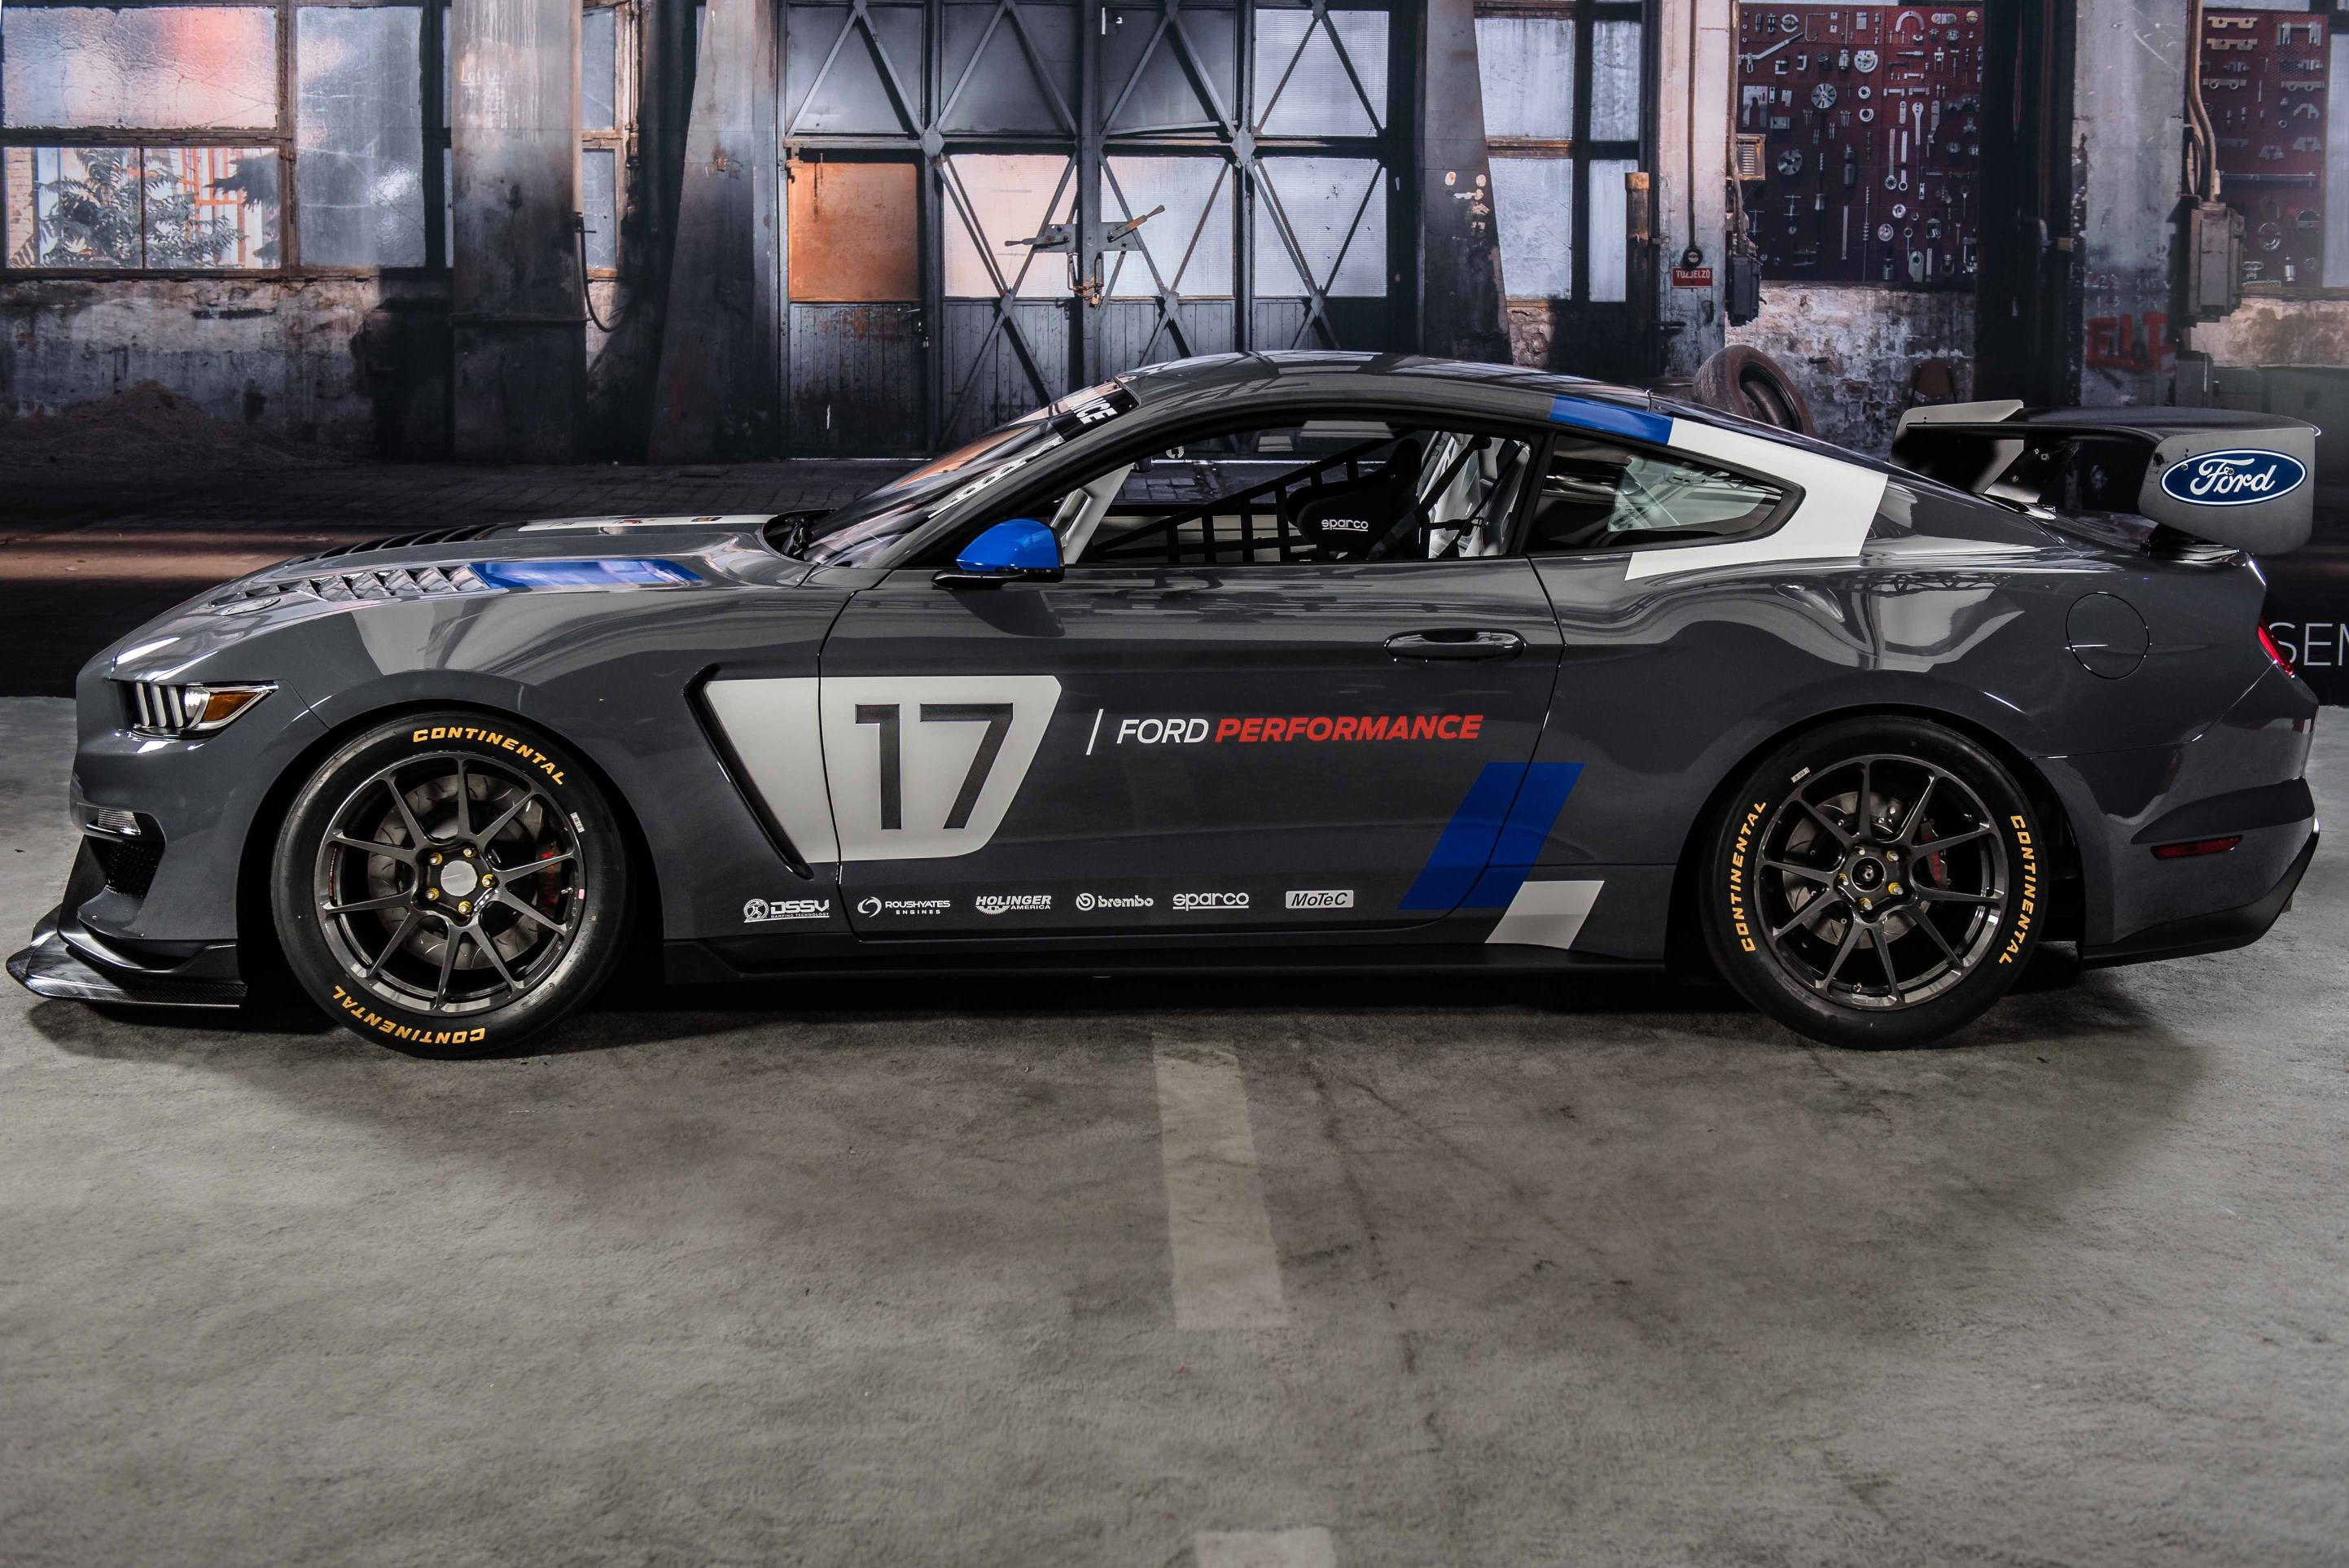 2020 Ford Mustang GT4 Turnkey Racecar Has Cross-Plane Crankshaft ...